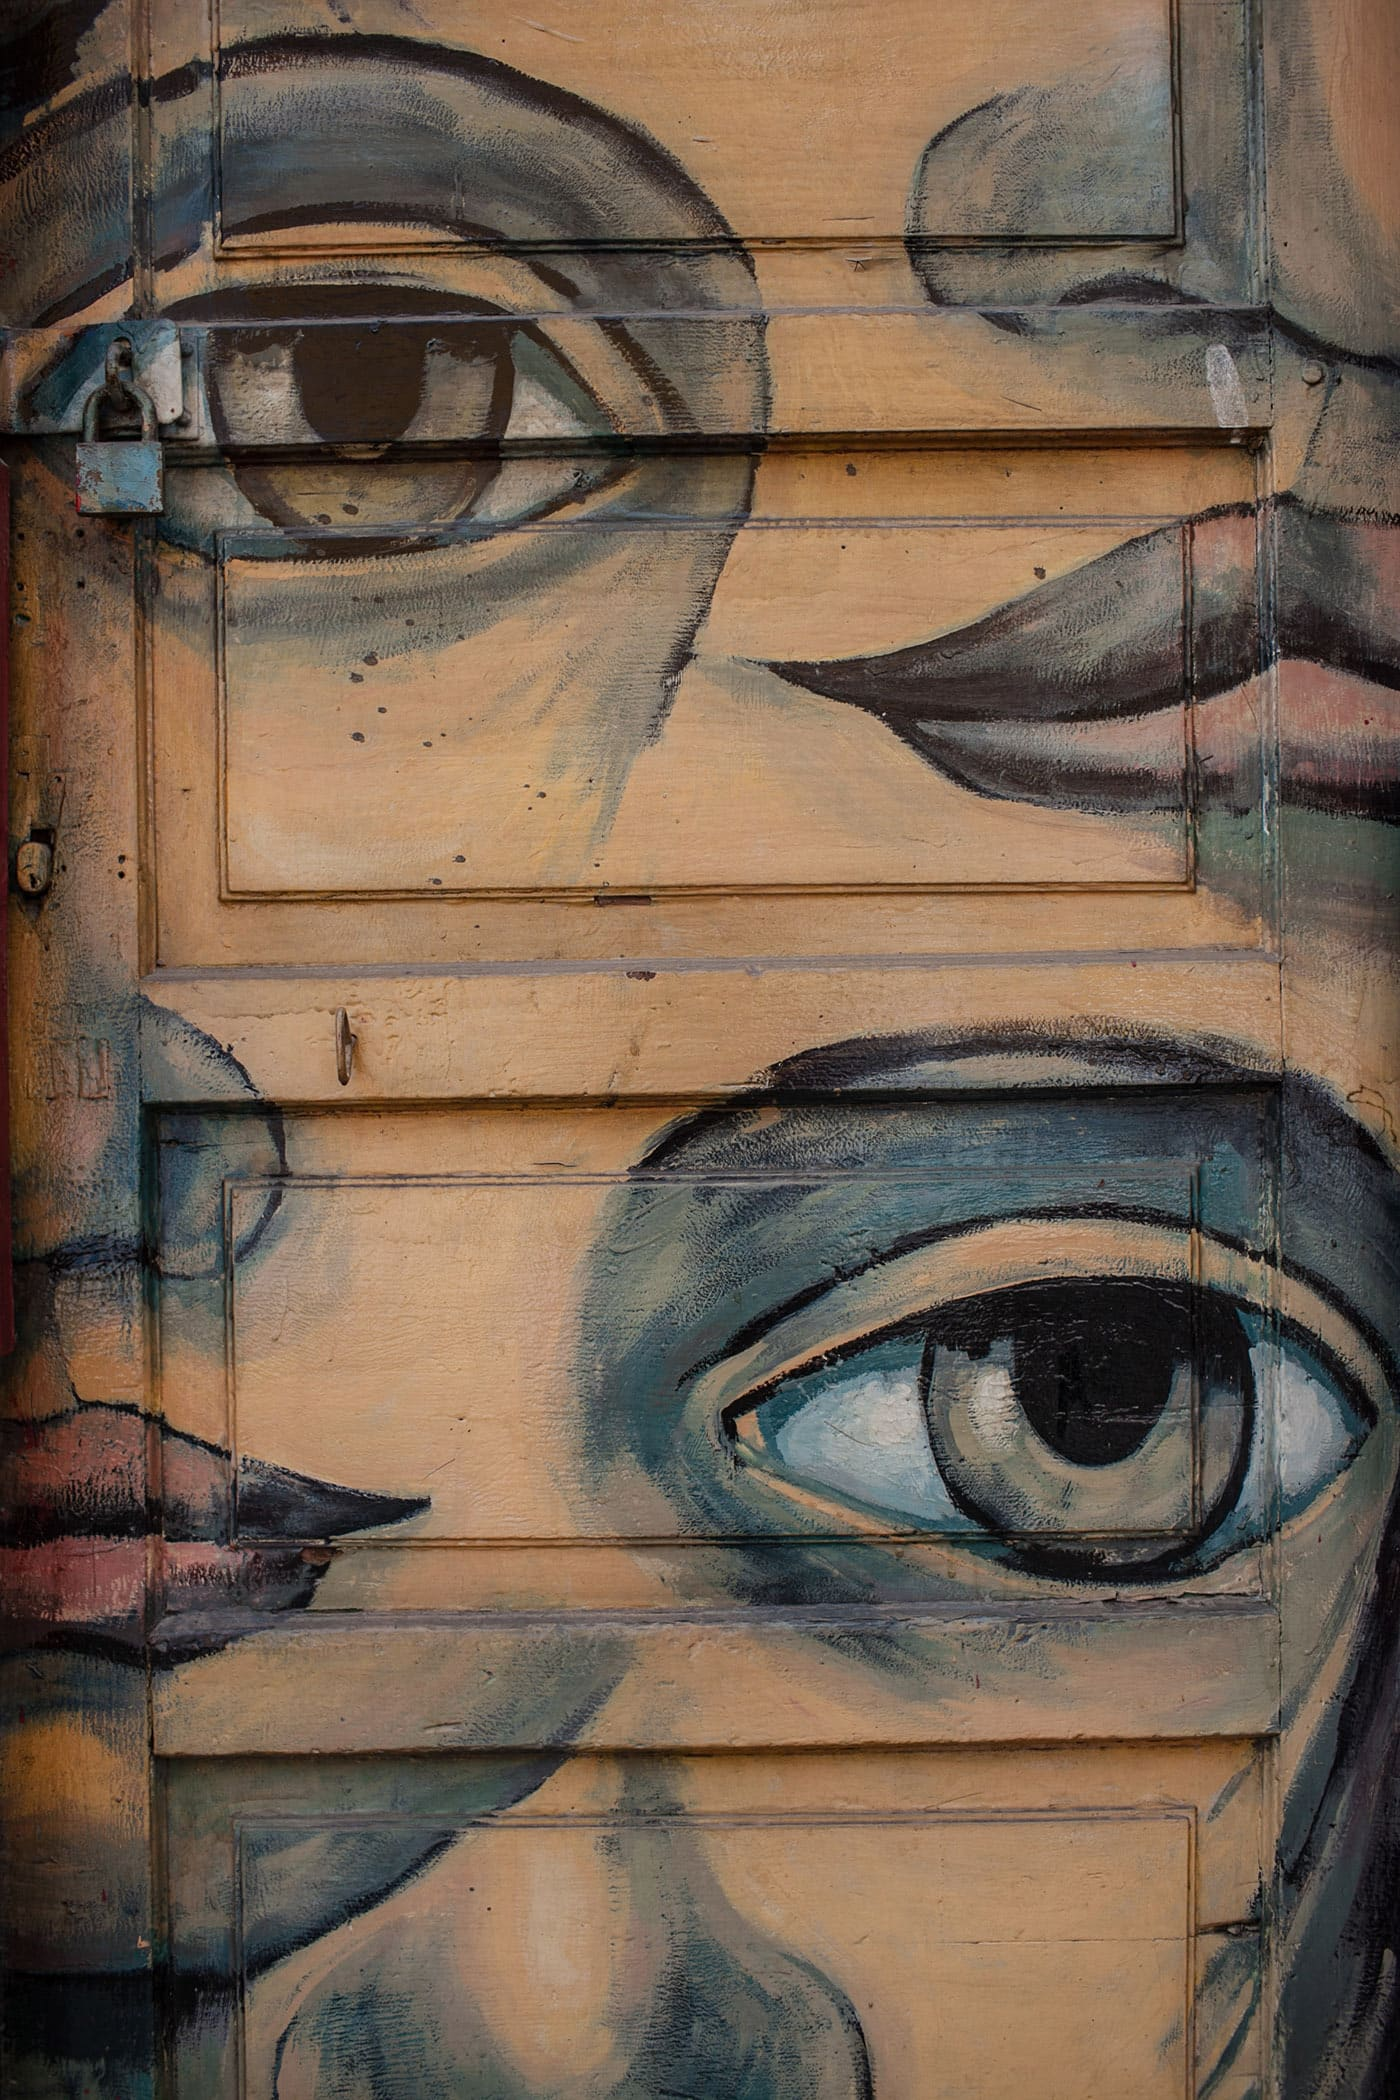 Best Street Art in Valparaiso, Chile - faces with large eyes, noses, and lips on a door